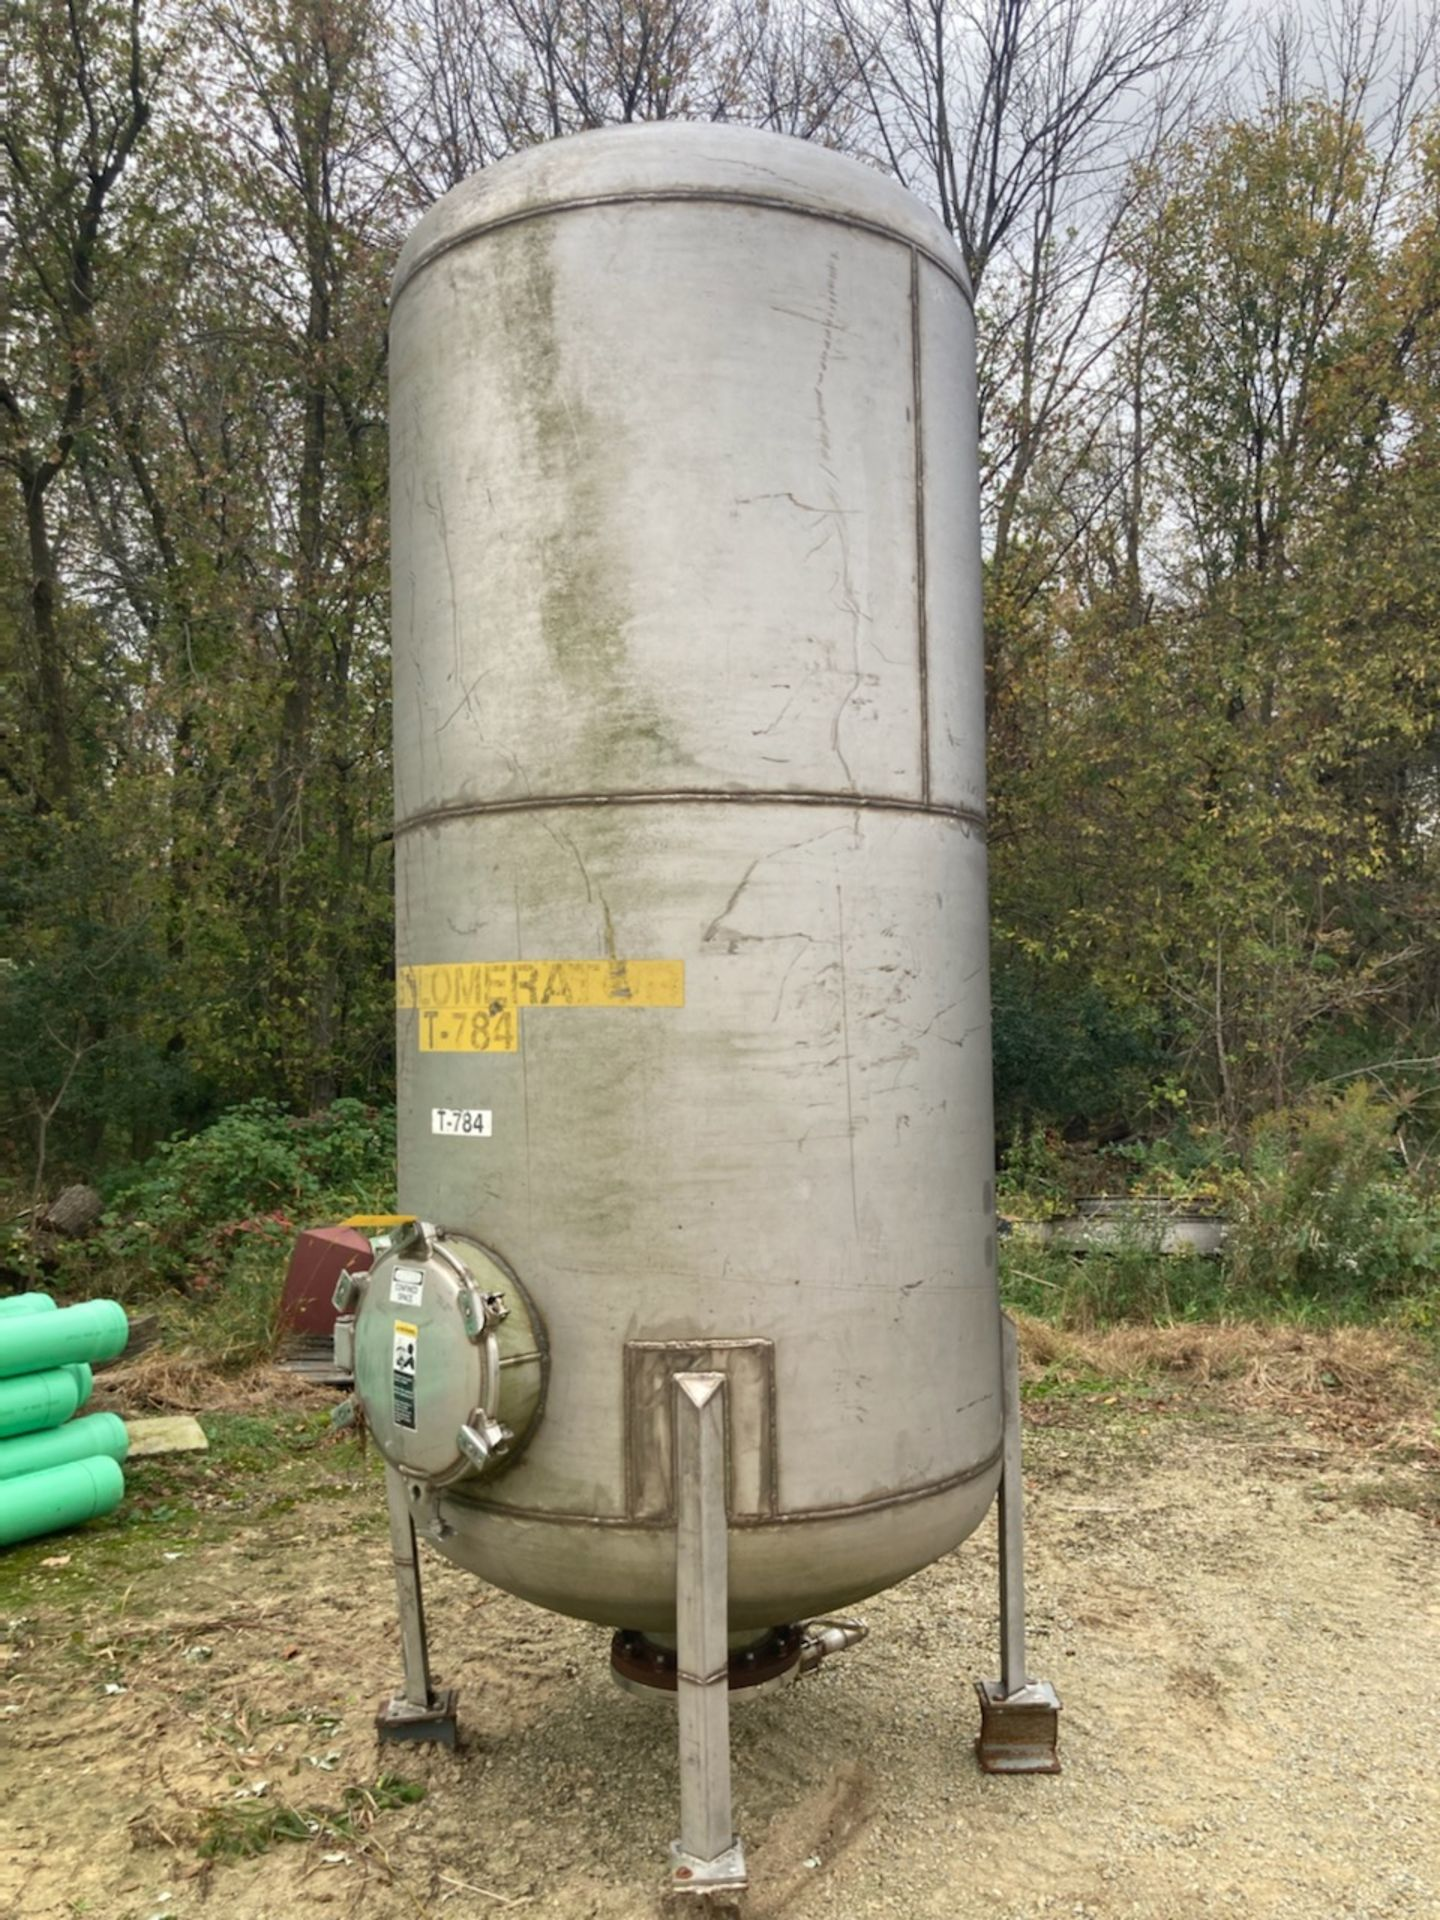 Stainless Steel Tank with Manway - Approximate 825 Gallons - Image 2 of 2